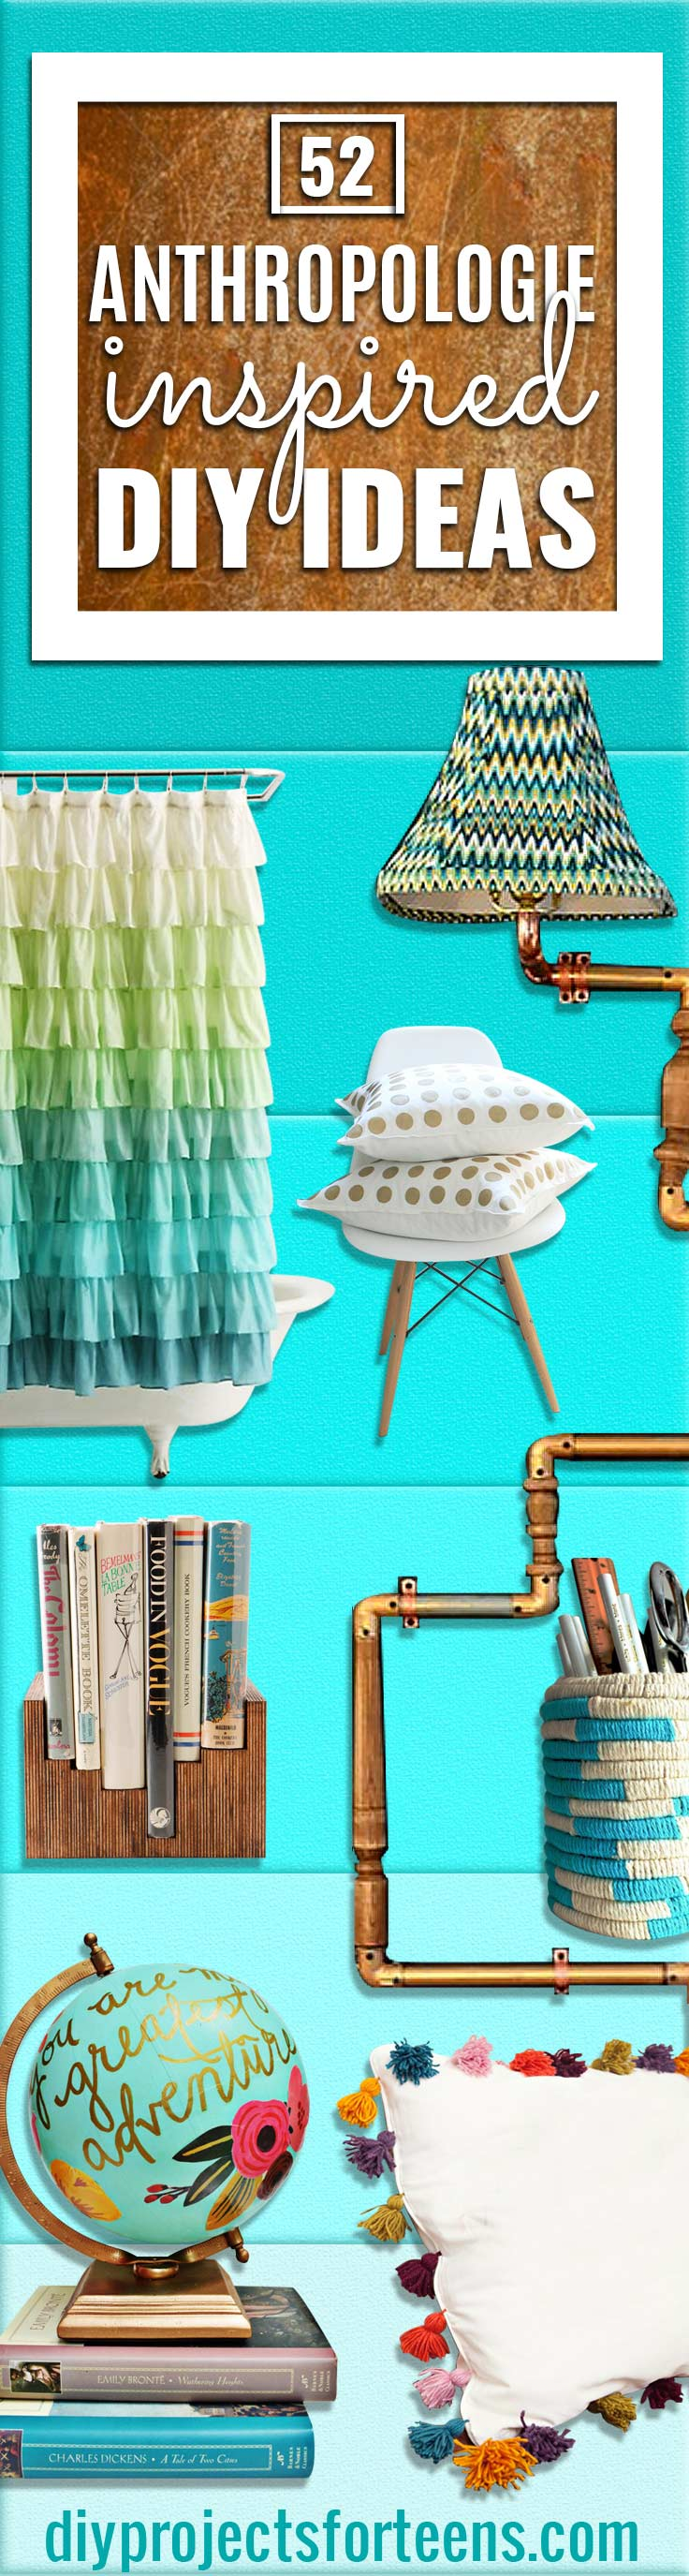 52 Amazing Anthropologie Hacks and DIYs To Try DIY Projects for